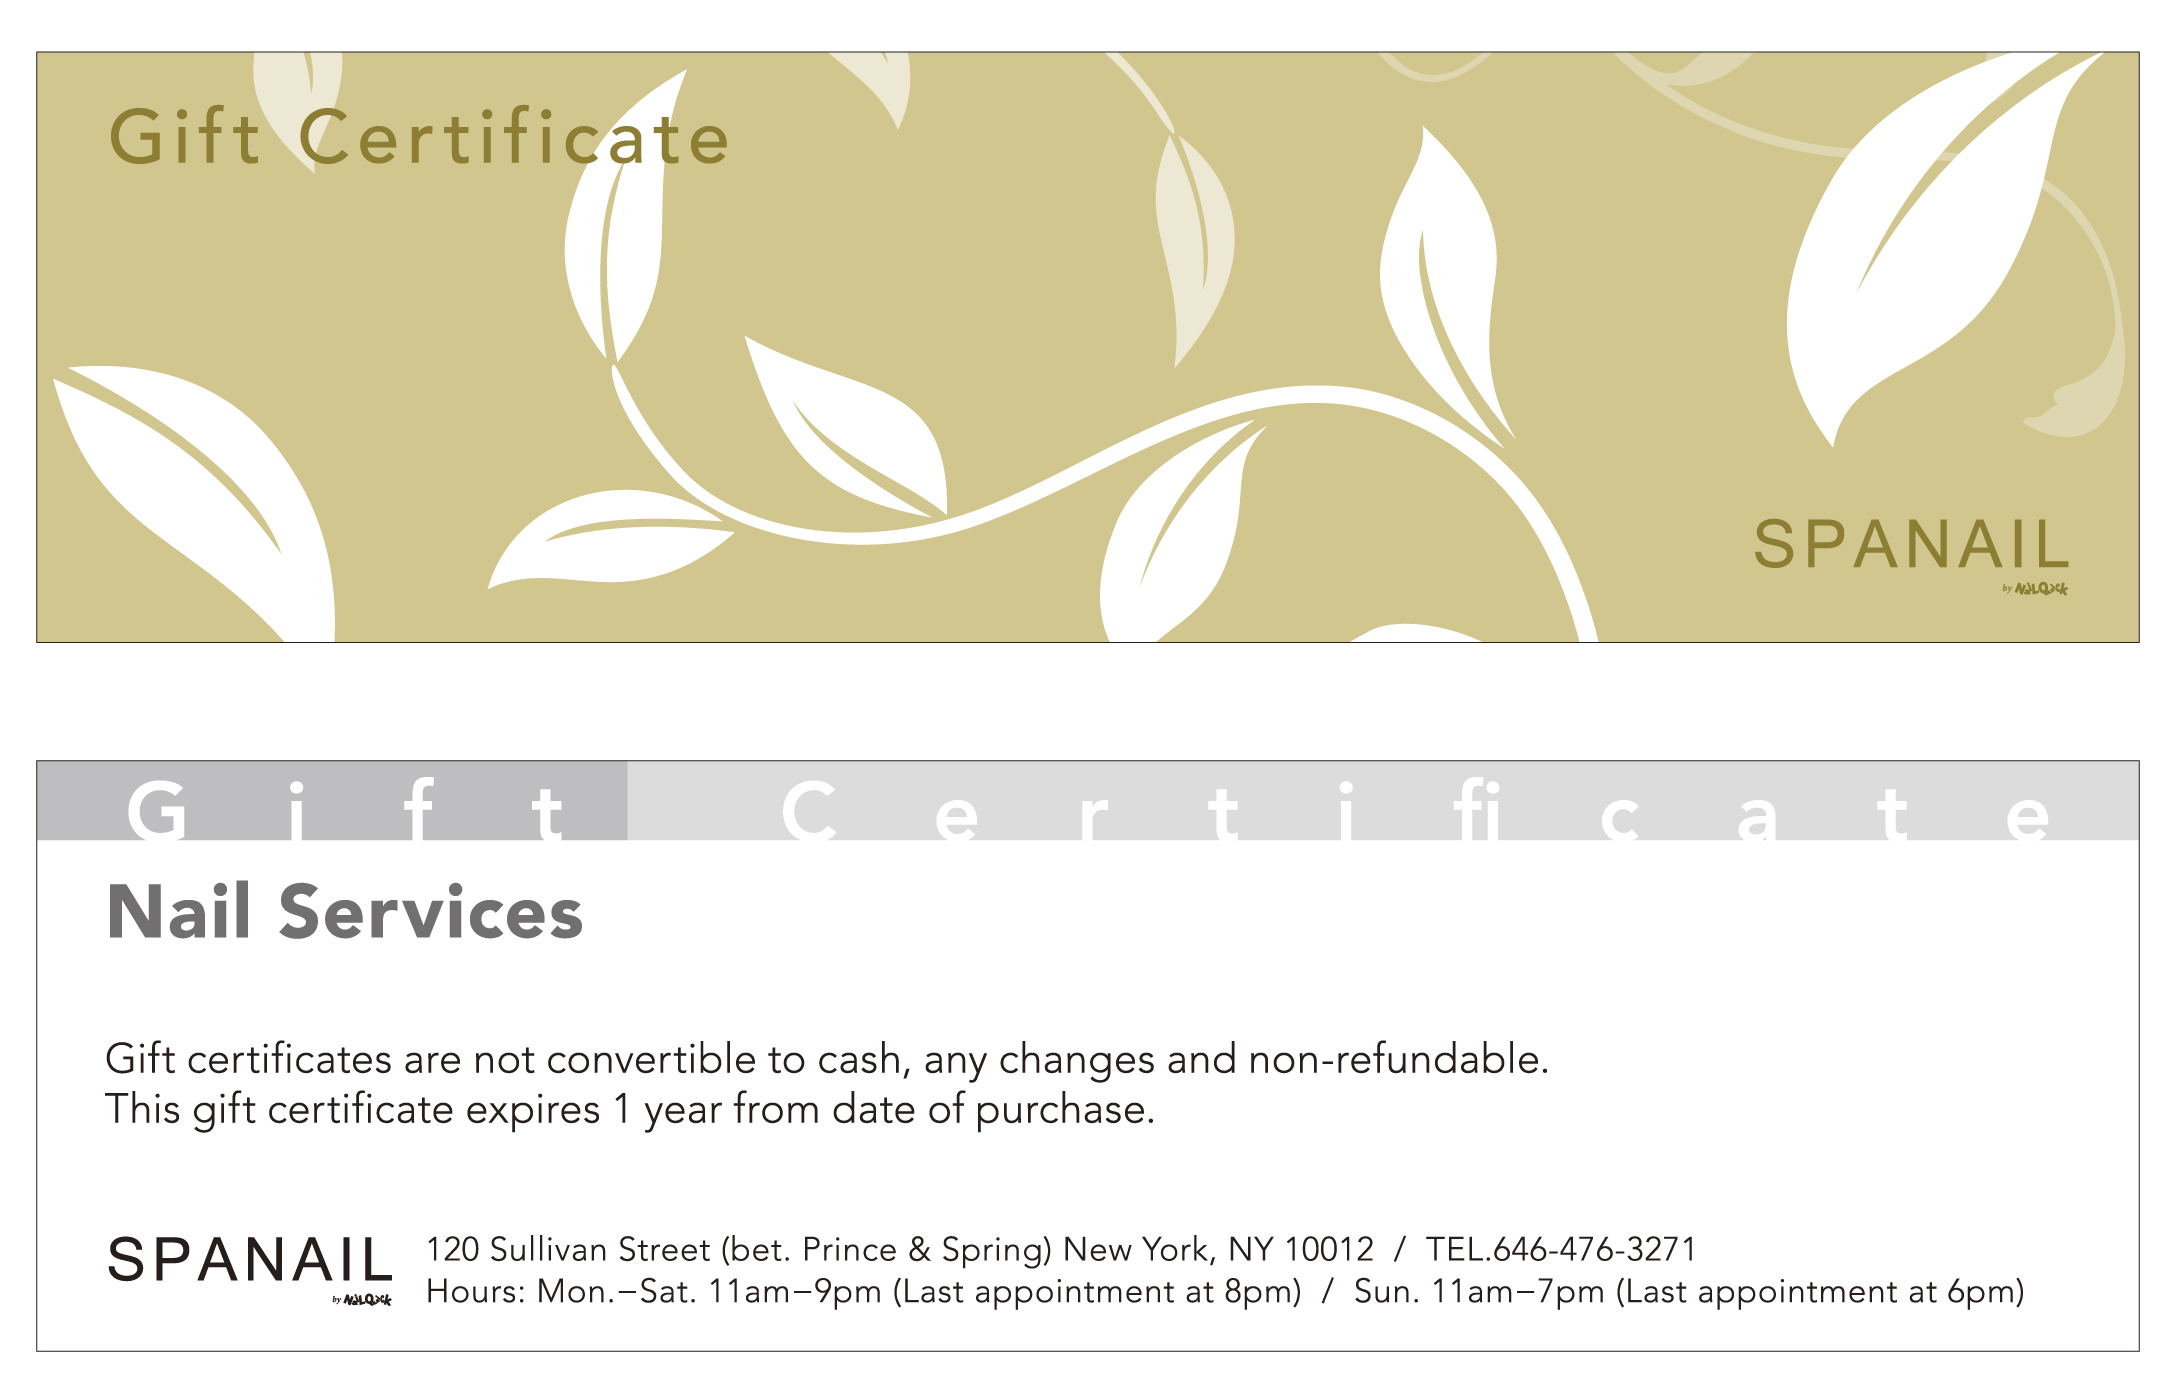 Spanail Gift Certificate